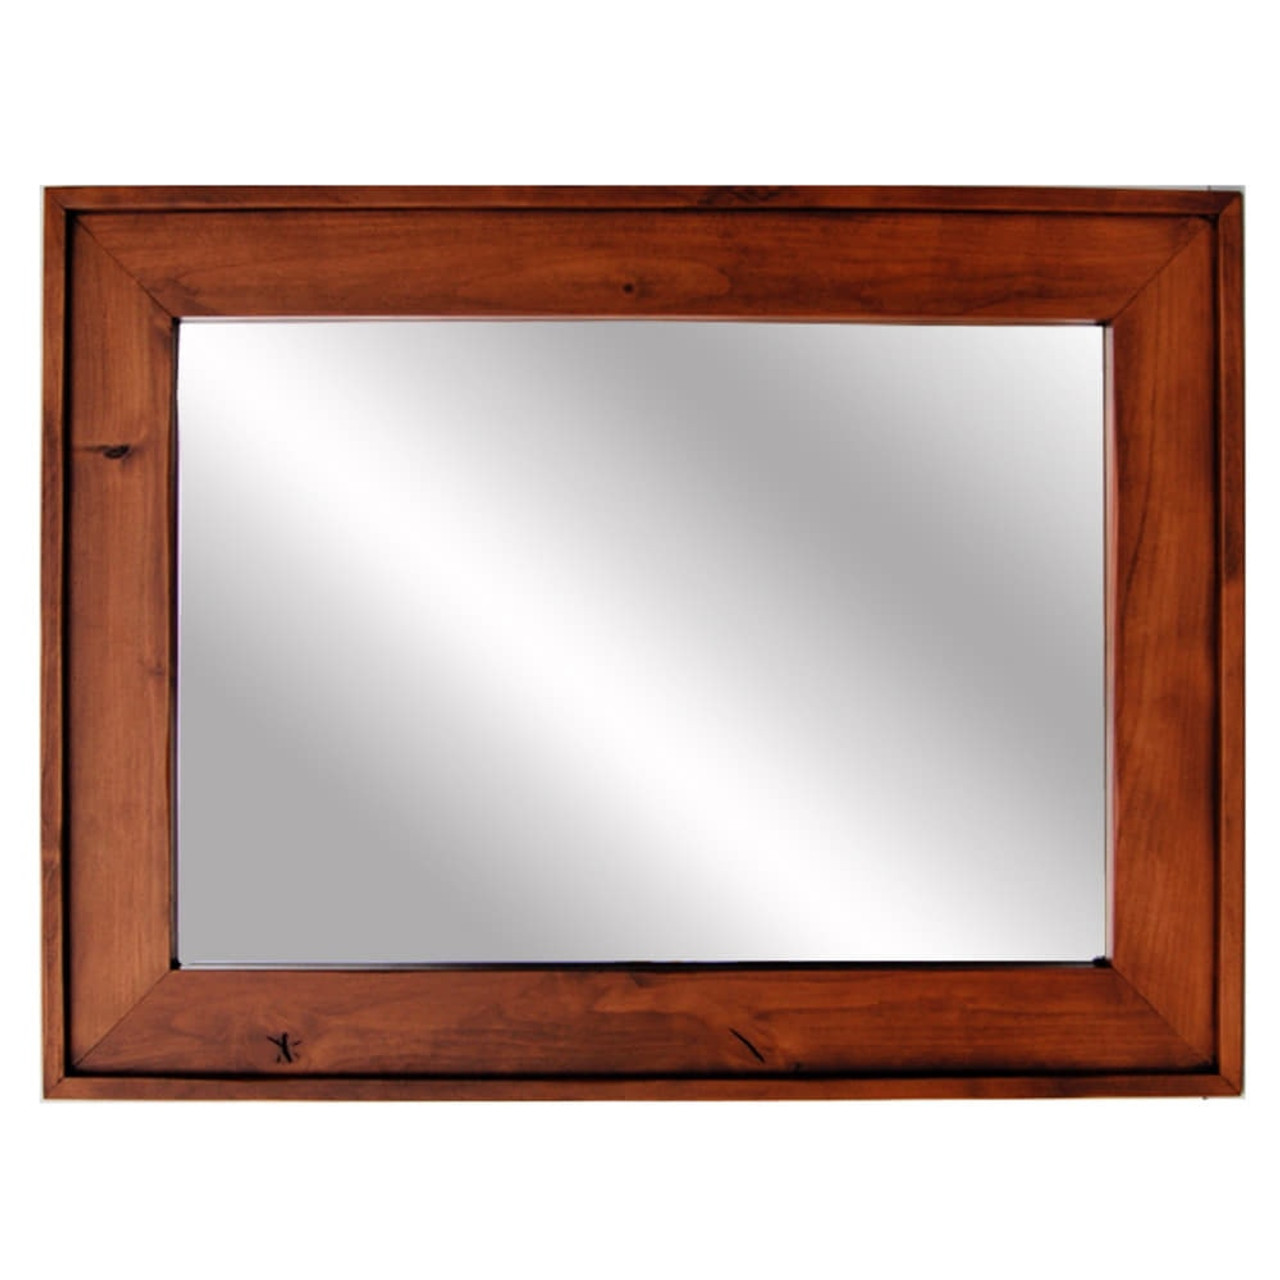 mirrors for bathrooms vanities rustic mirrors cherry stained wood mirror custom 19536